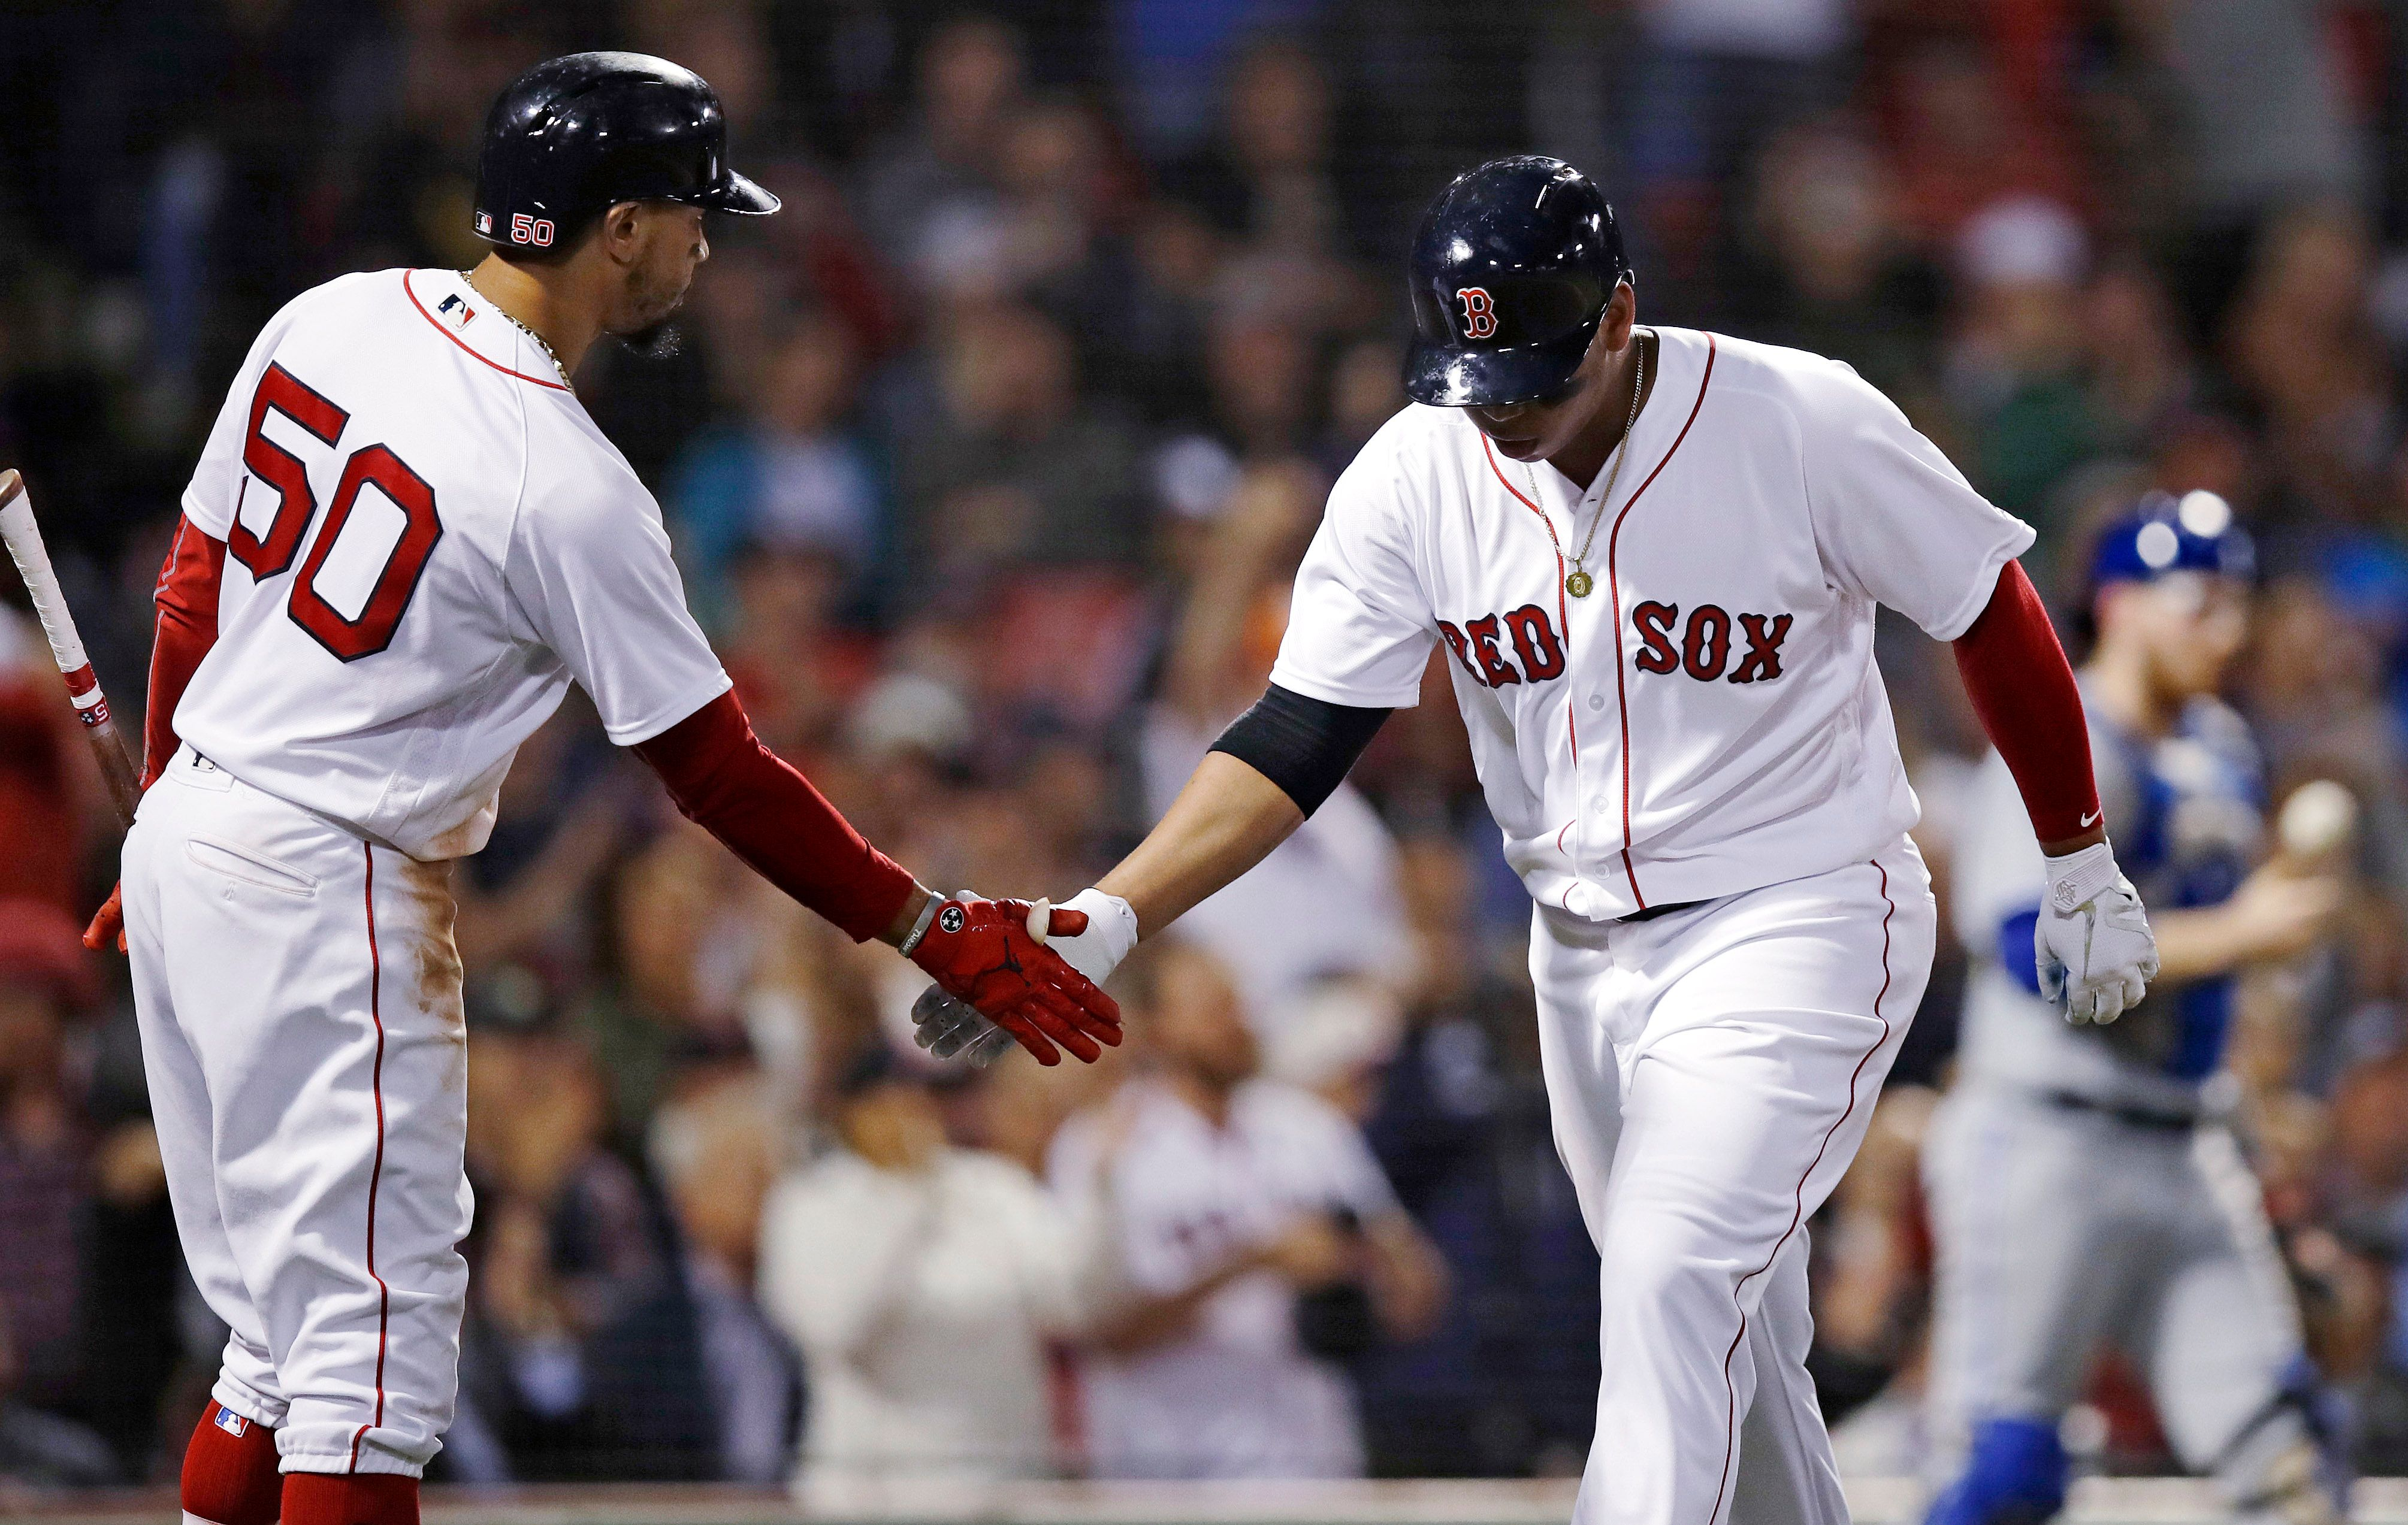 Red Sox reach 100 wins for 1st time since '46, beat Jays 1-0